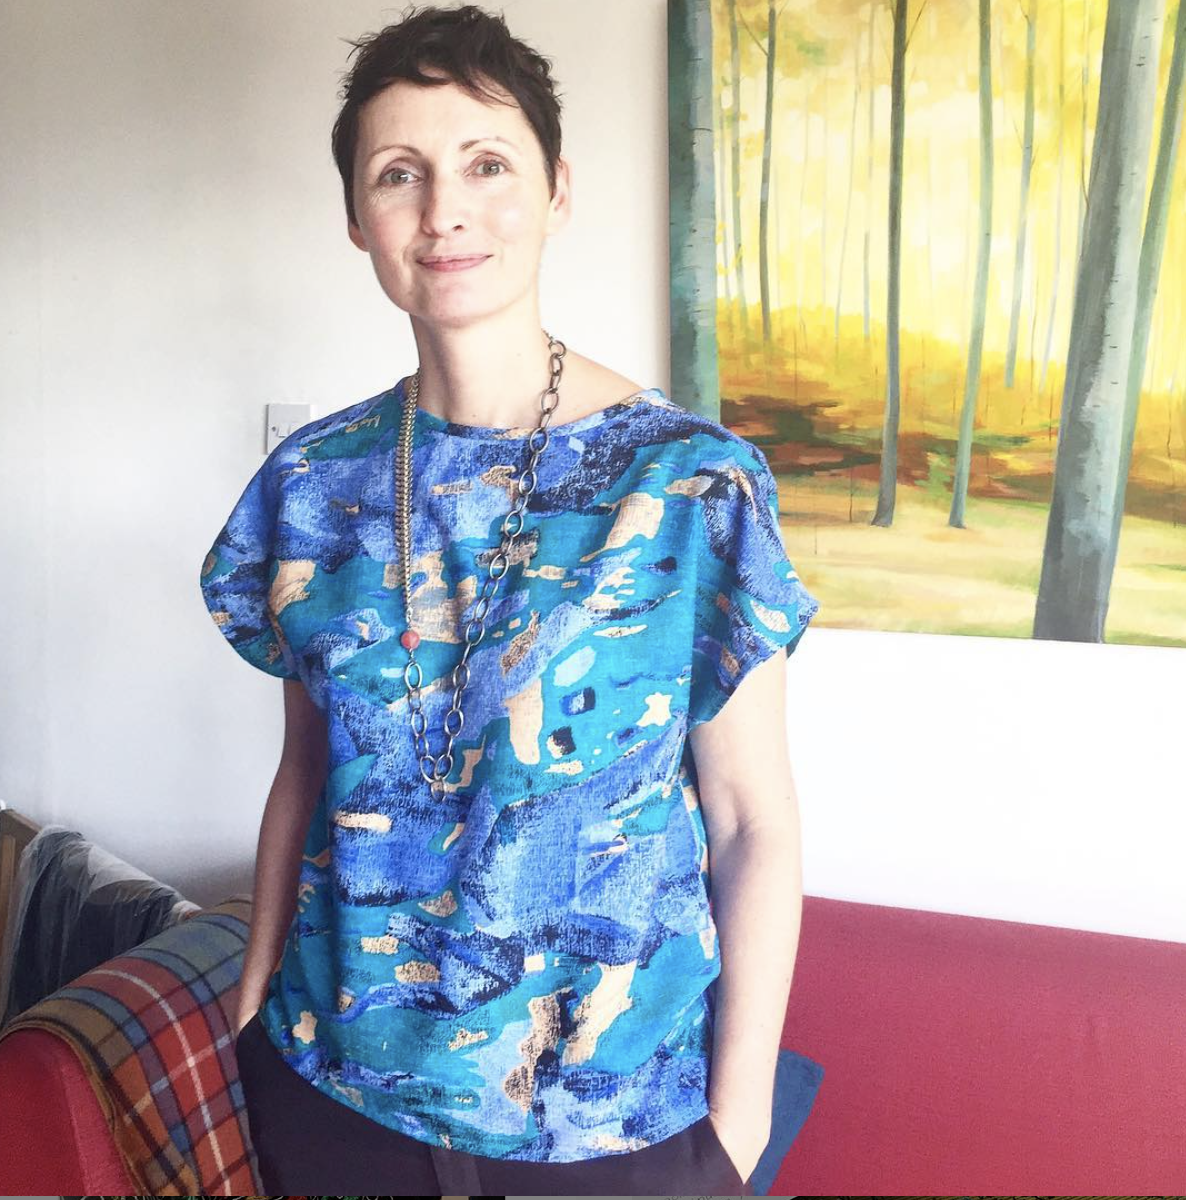 Brigitte of @twistedvintagejewellery in her Painterly View Neat Top with cap sleeves